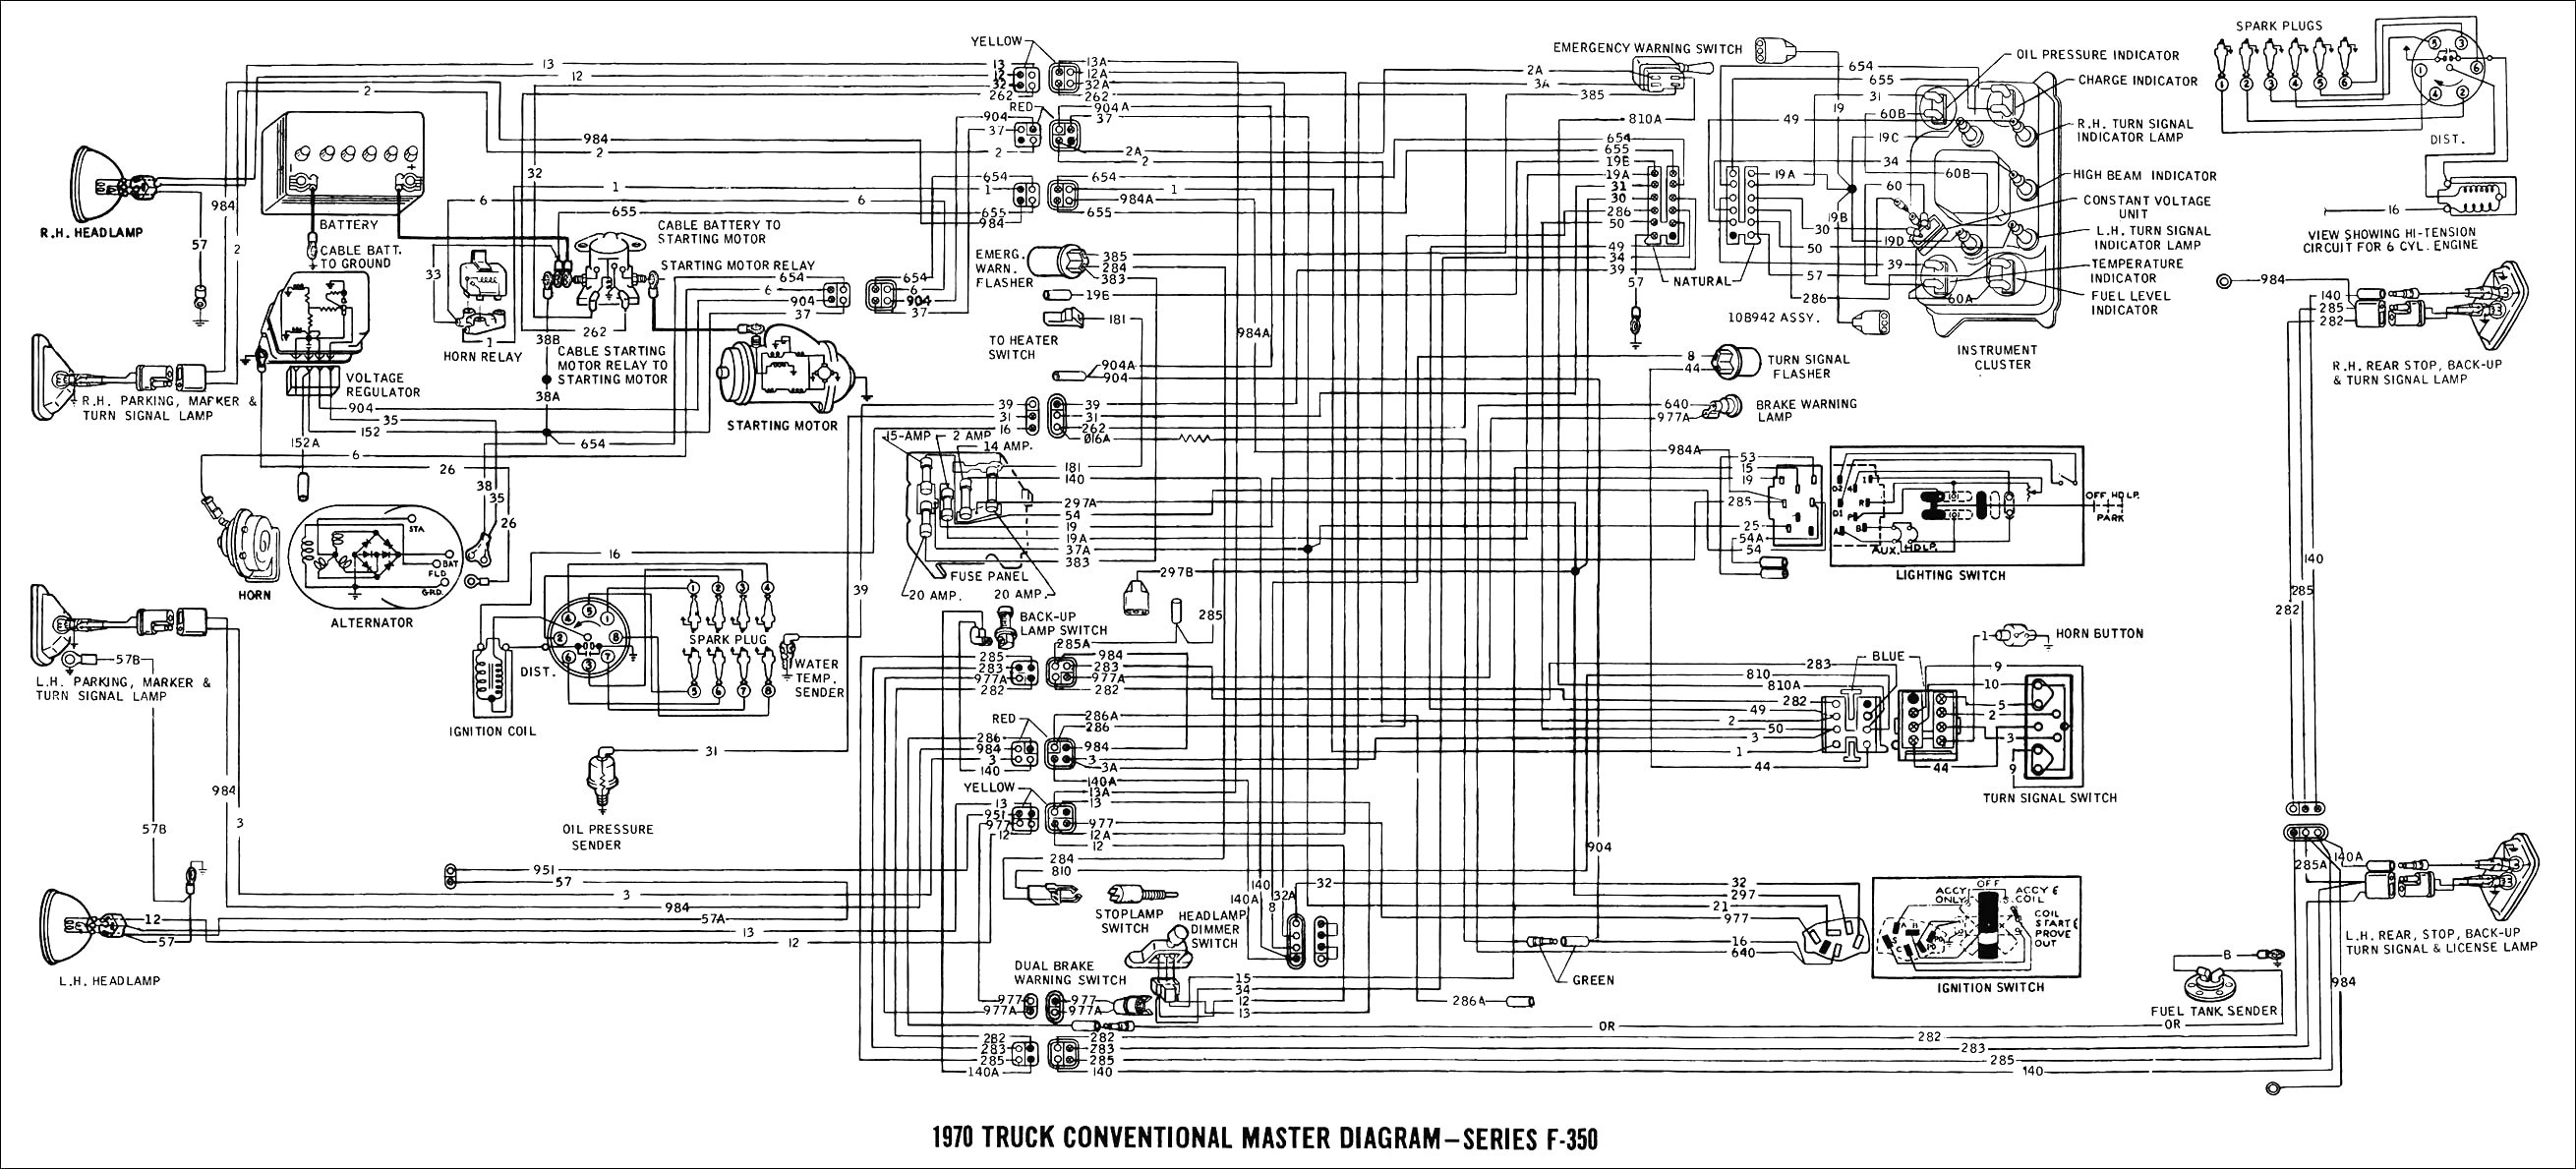 Wiring Diagram PDF: 2003 Ford Expedition Engine Diagram